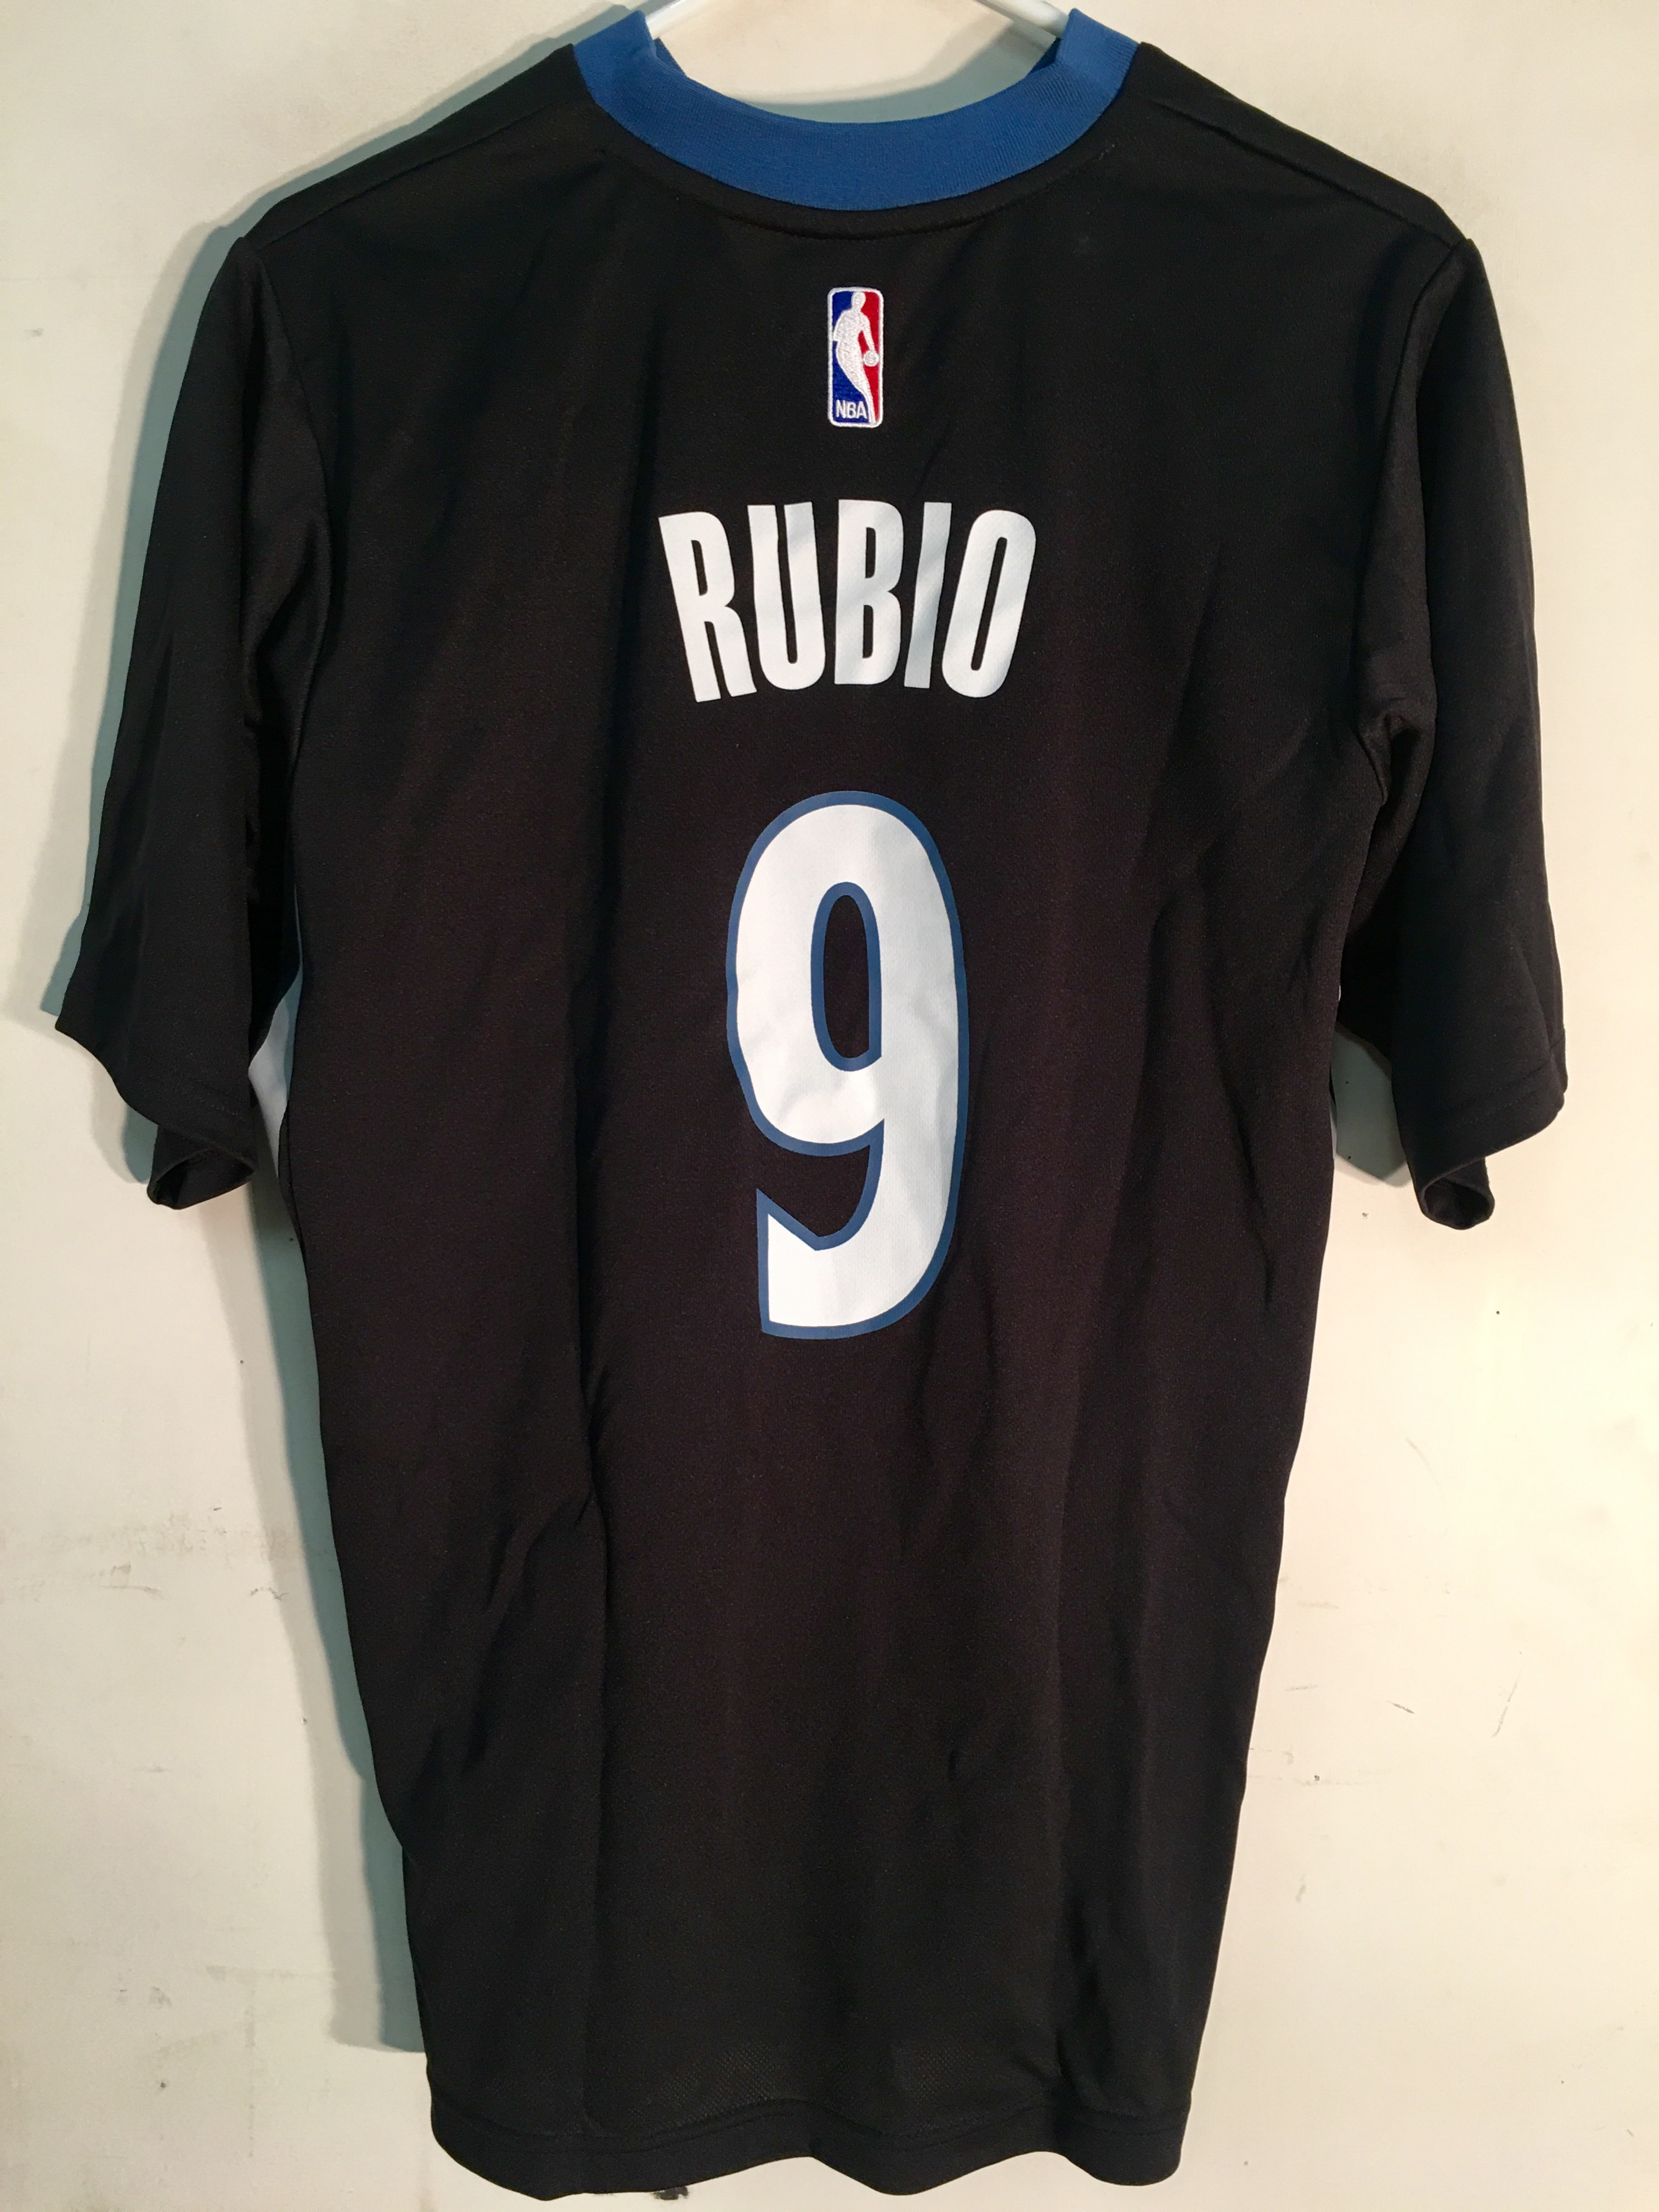 3449f784ad36 Details about Adidas NBA Jersey Minnesota Timberwolves Rubio Black SS sz S